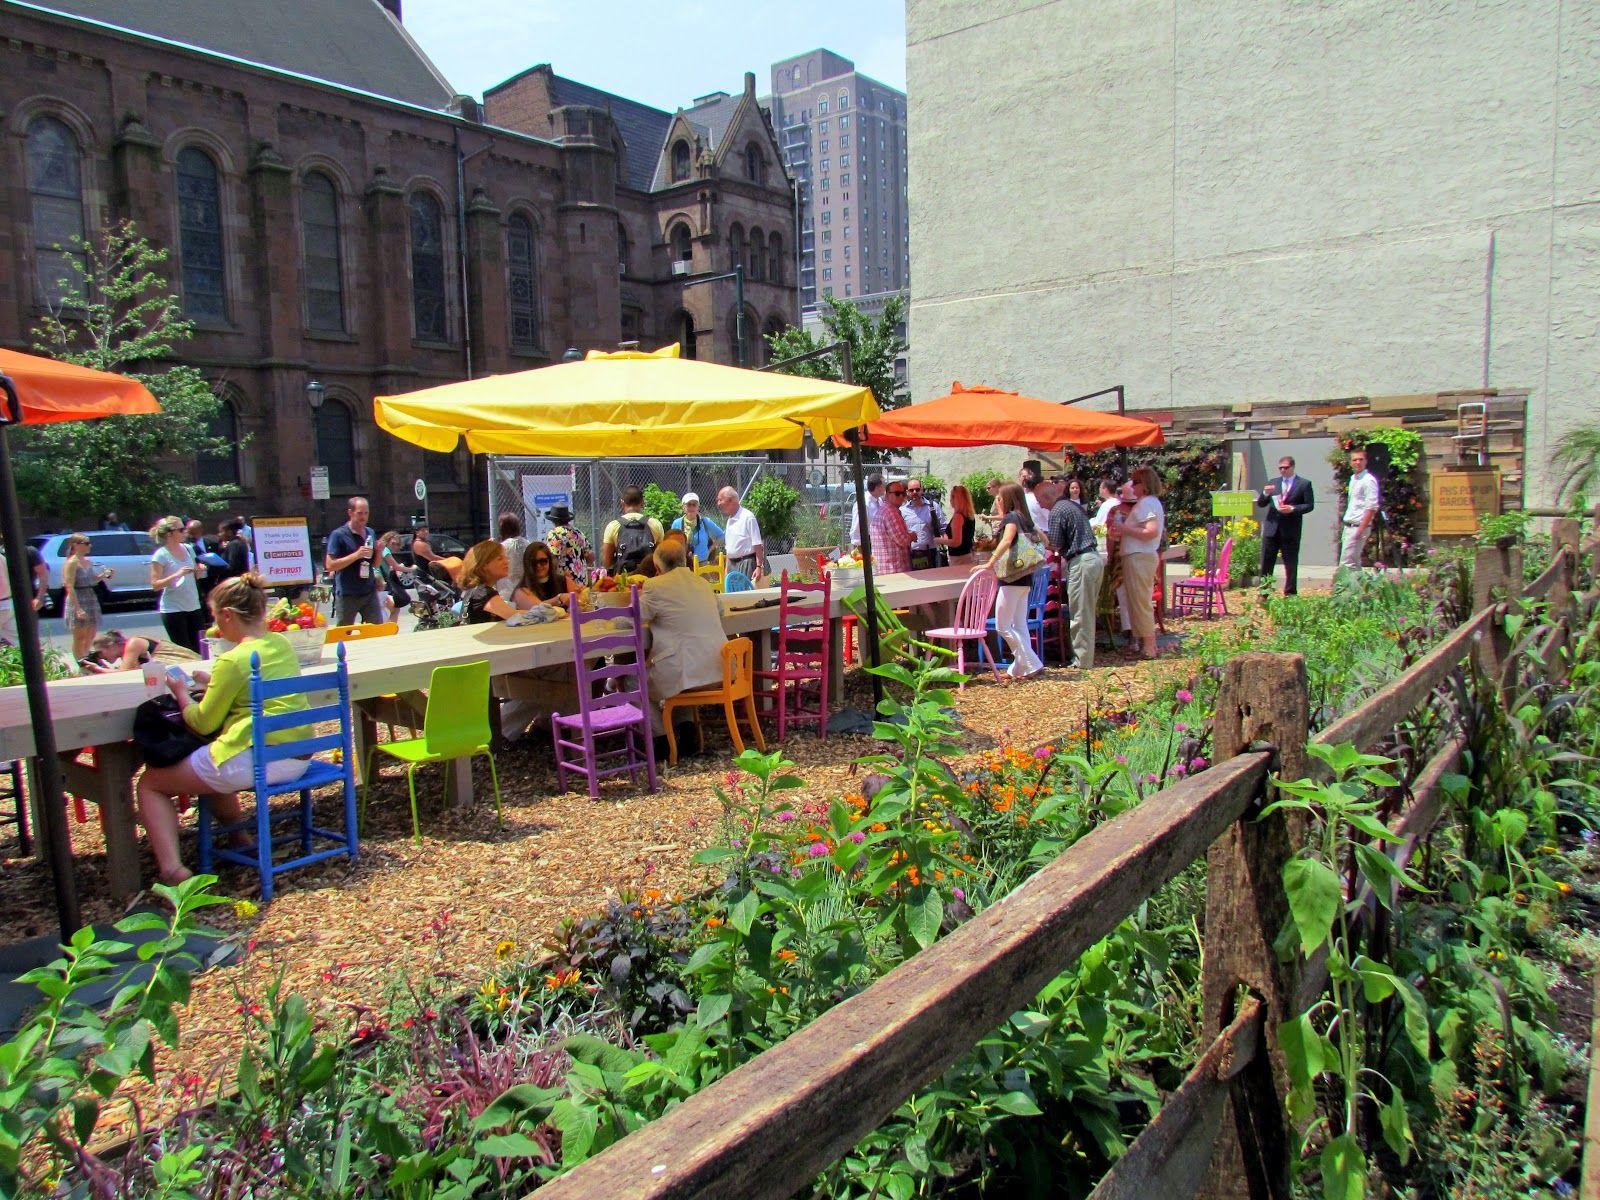 Picnic Learn And Grow This Summer In New Pop Up Community Garden